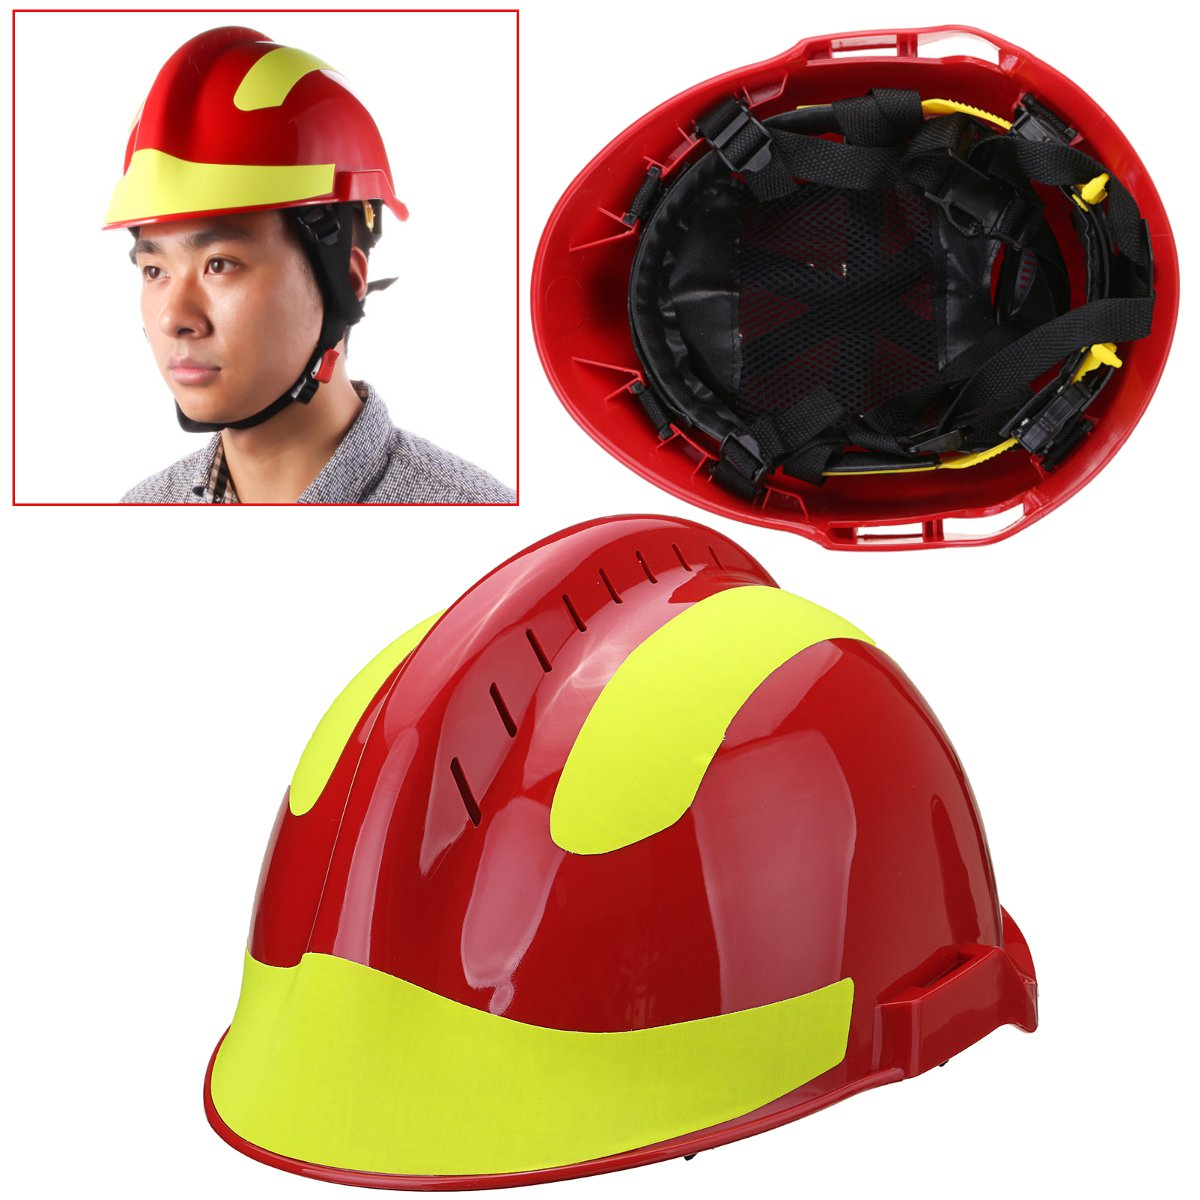 53CM-63CM Safurance Rescue Helmet Fire-Fighter Protective Glasses Safety Protector Workplace Safety Fire-Protection fire maple sw28888 outdoor tactical motorcycling wild game abs helmet khaki